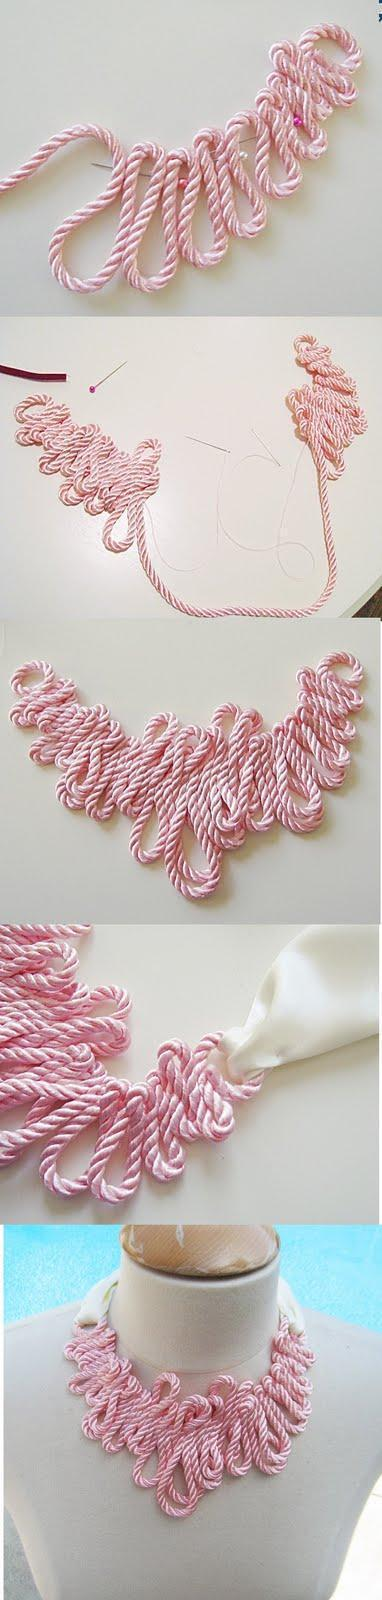 rope-necklace-diy.jpg